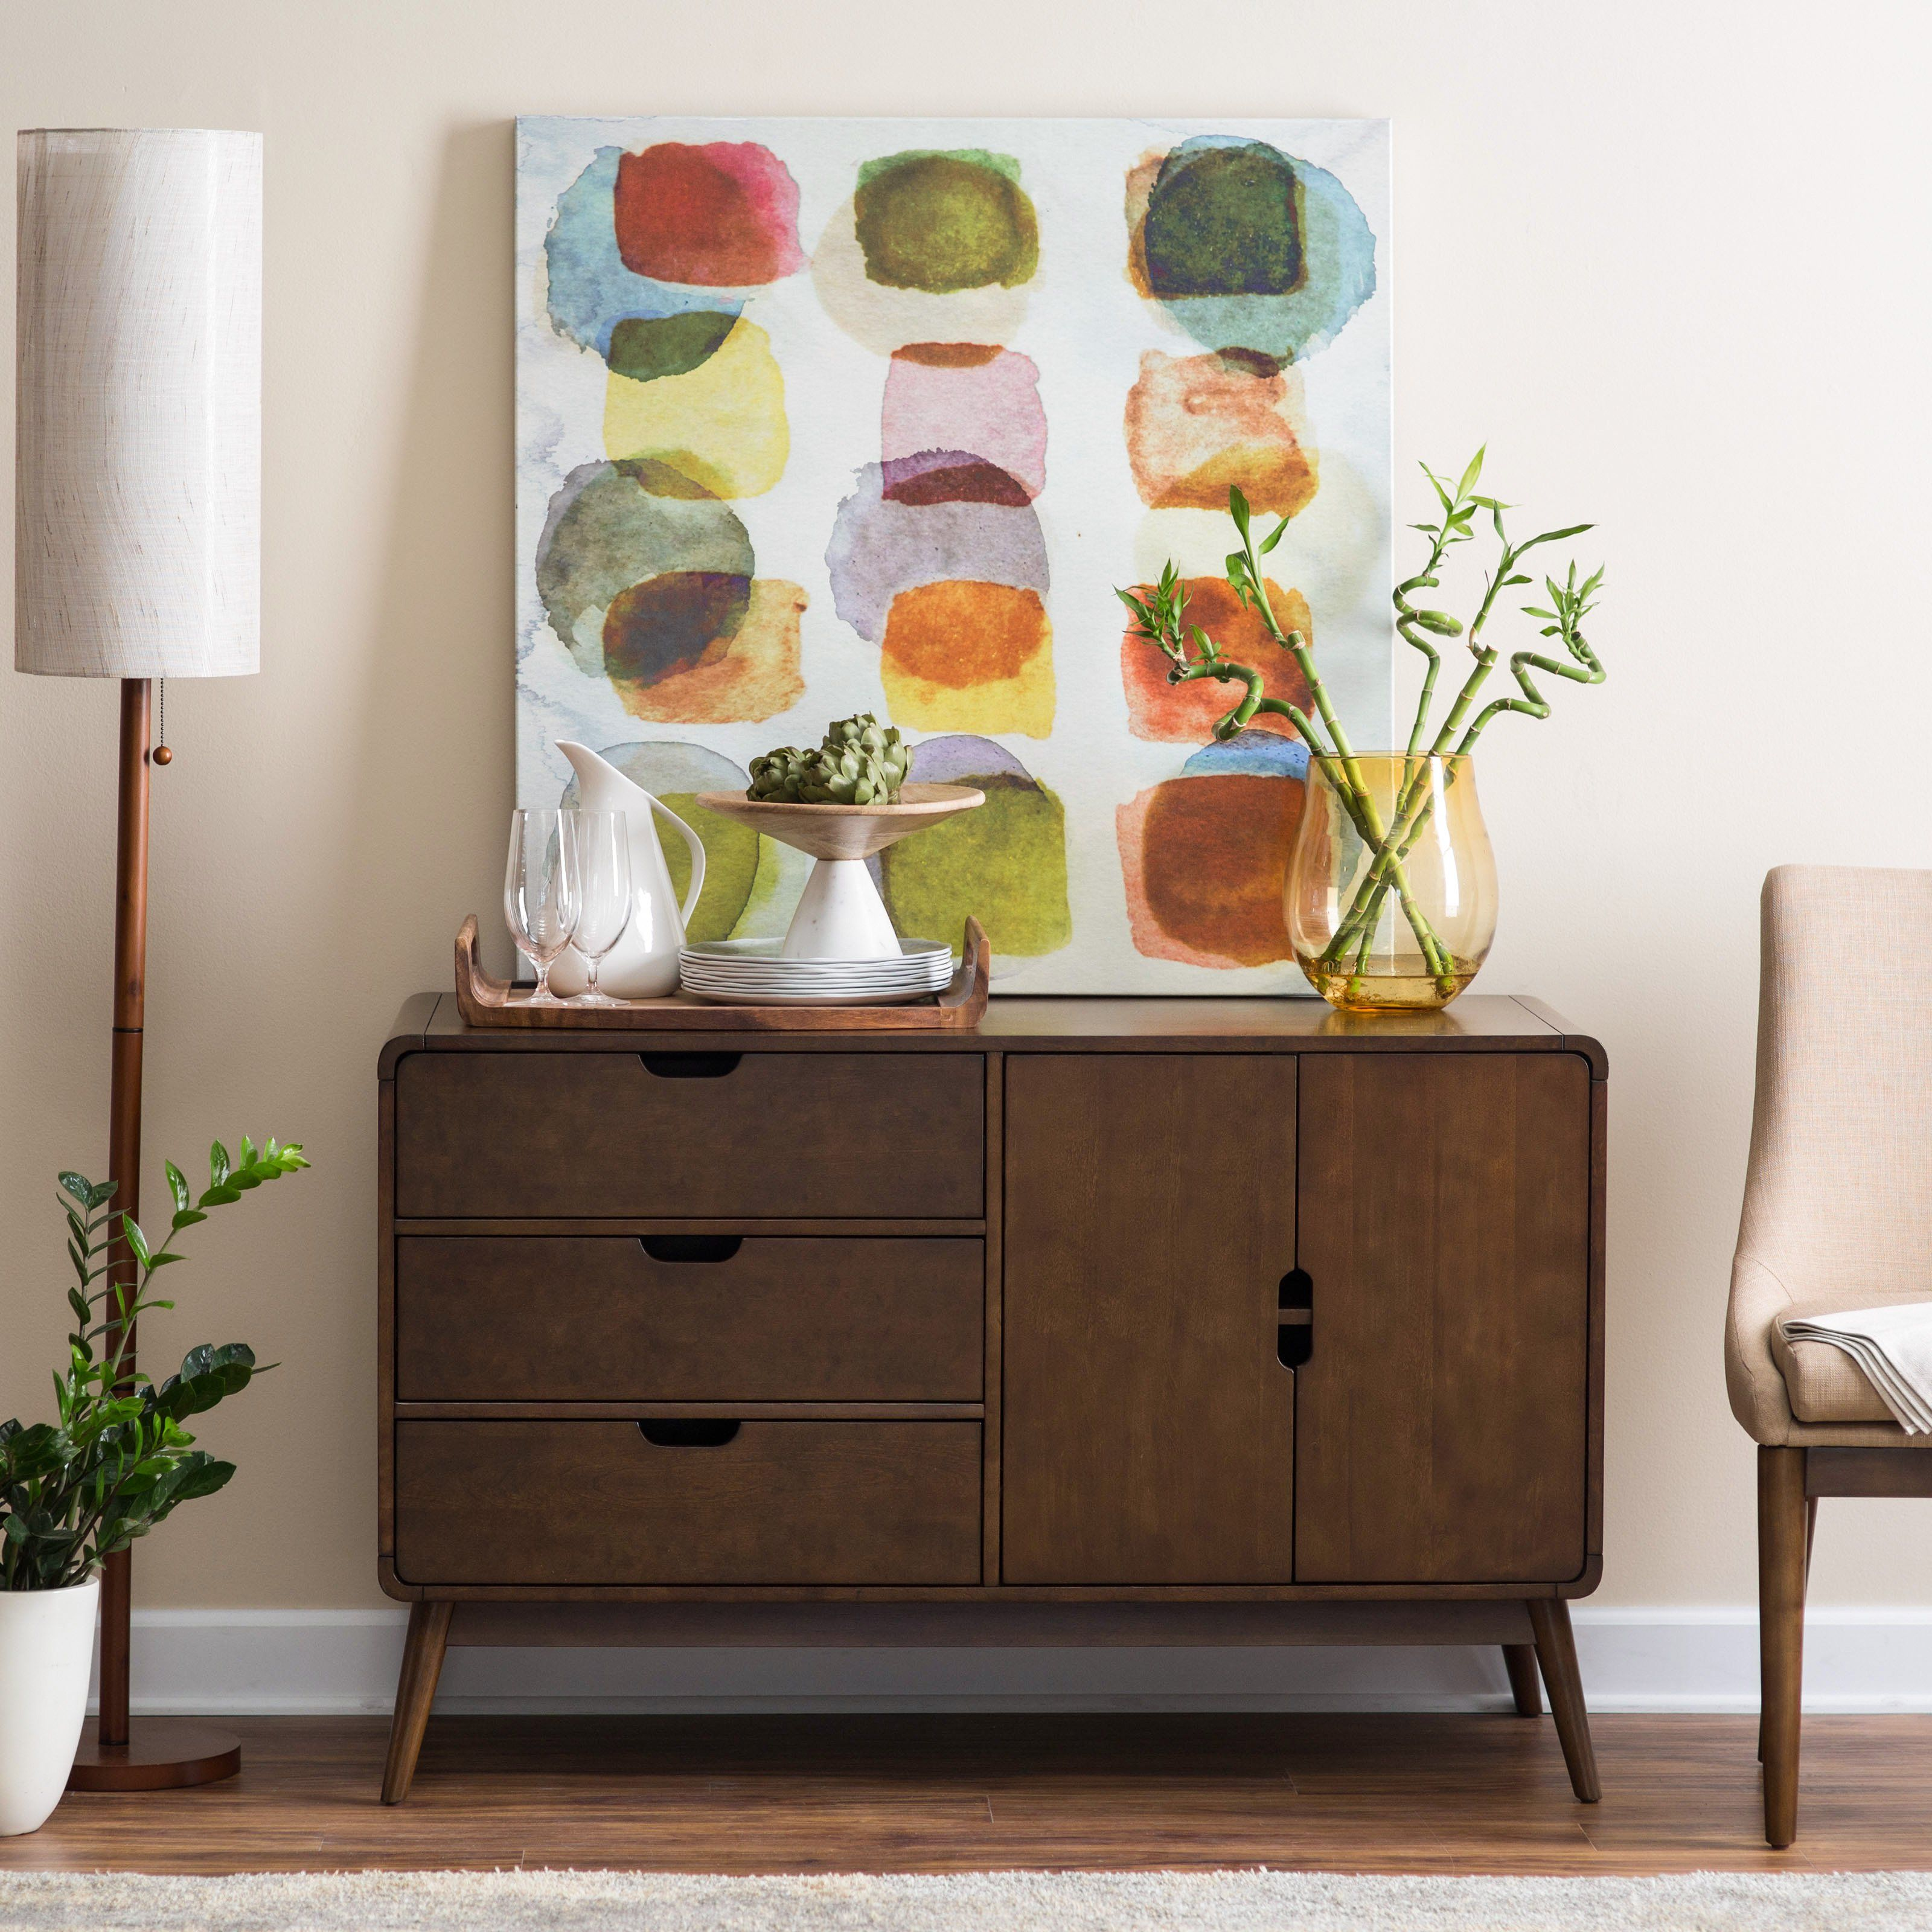 695f8222c3 A mid-century darling, this Belham Living Carter Buffet offers the best of  mid-mod style designed to accommodate today's needs. This buffet.